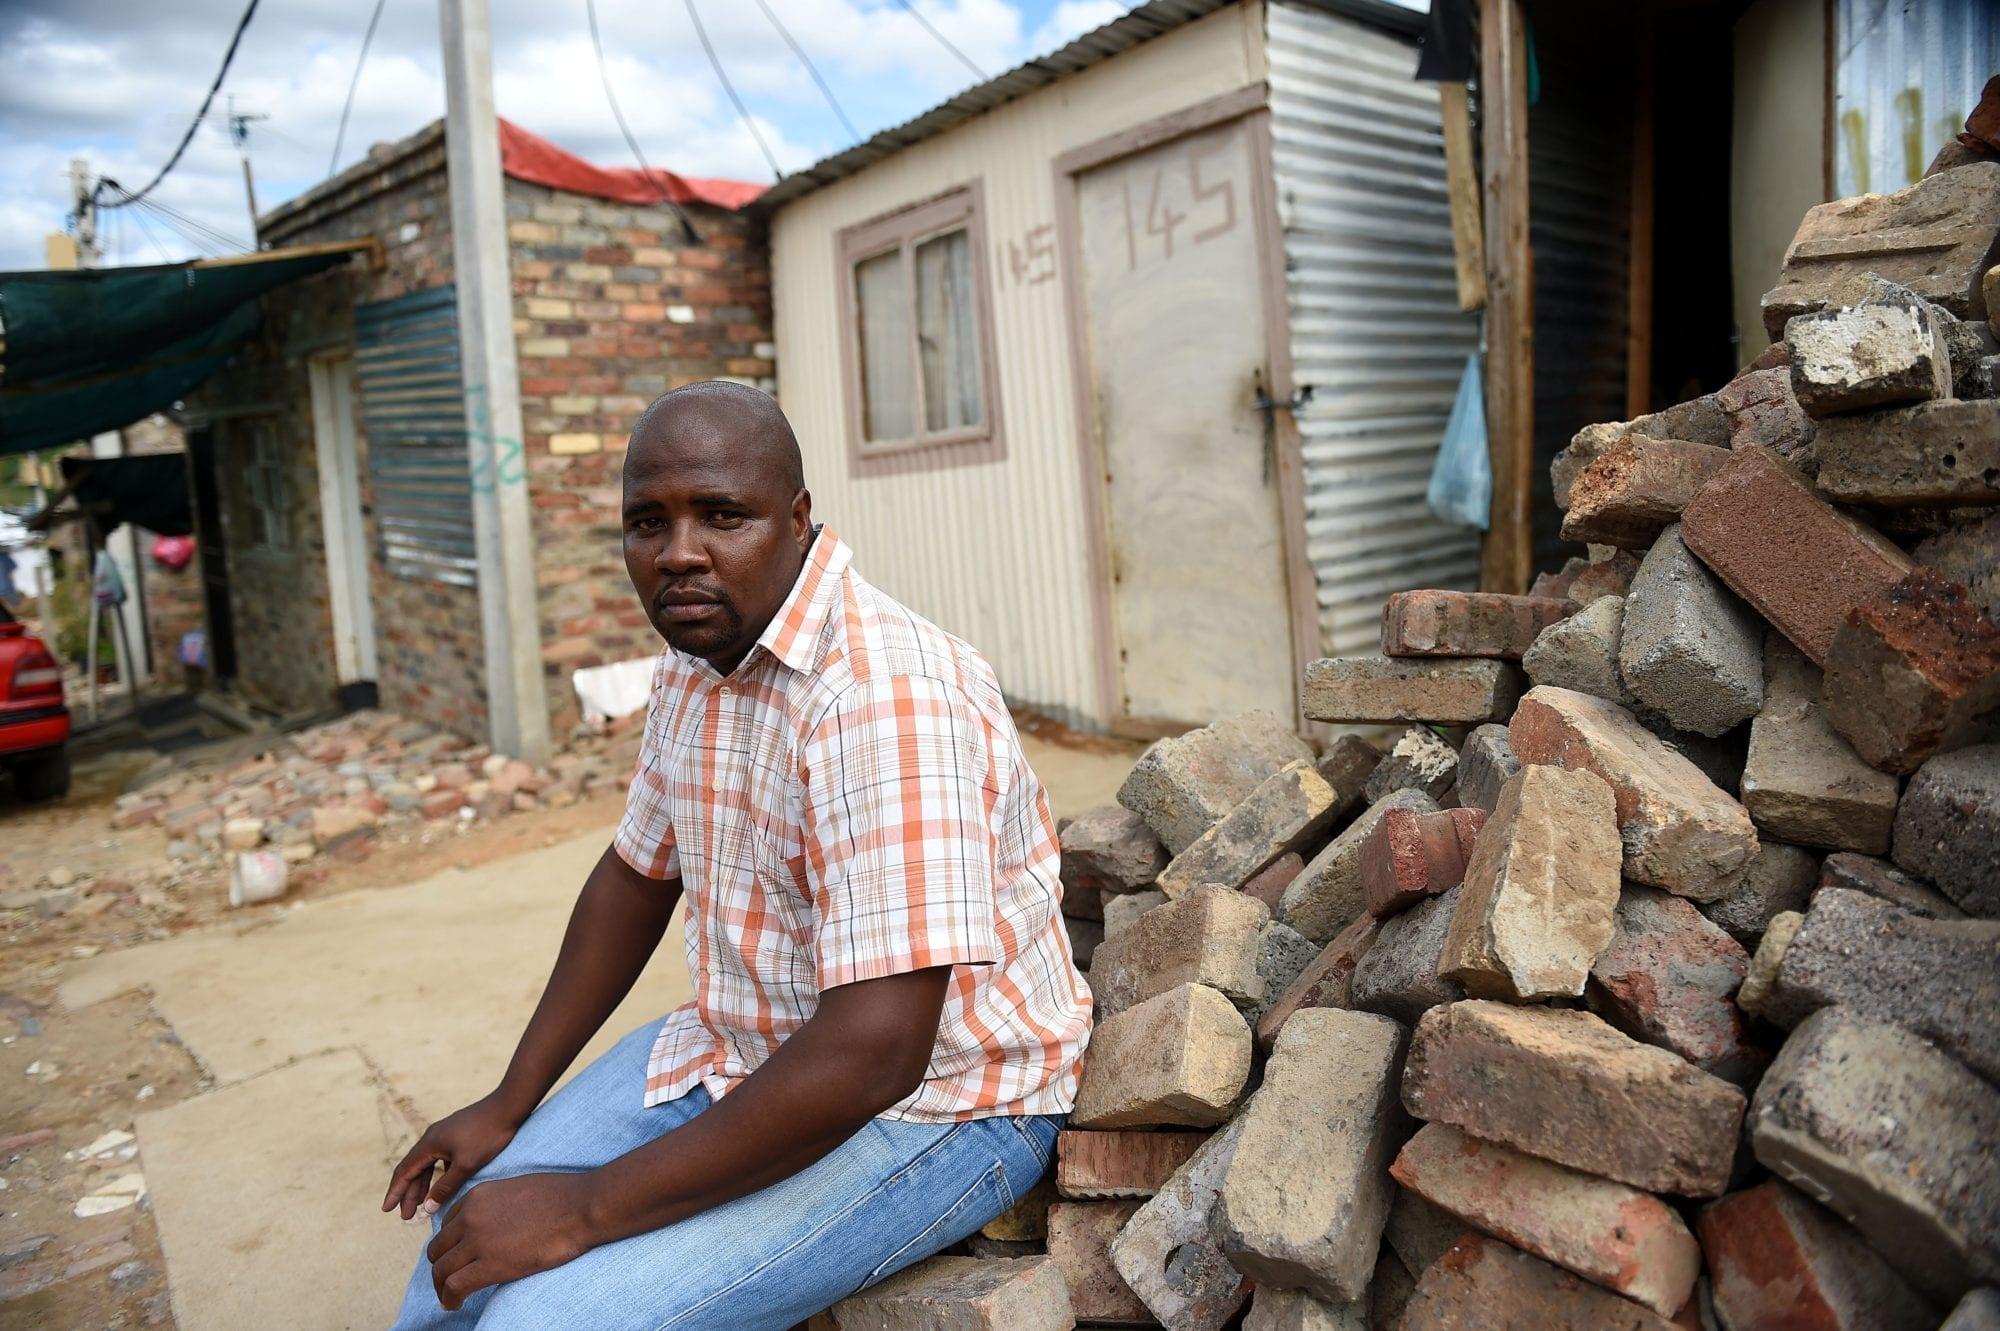 Migrant Mine Worker in South Africa: 'We Have Nothing'